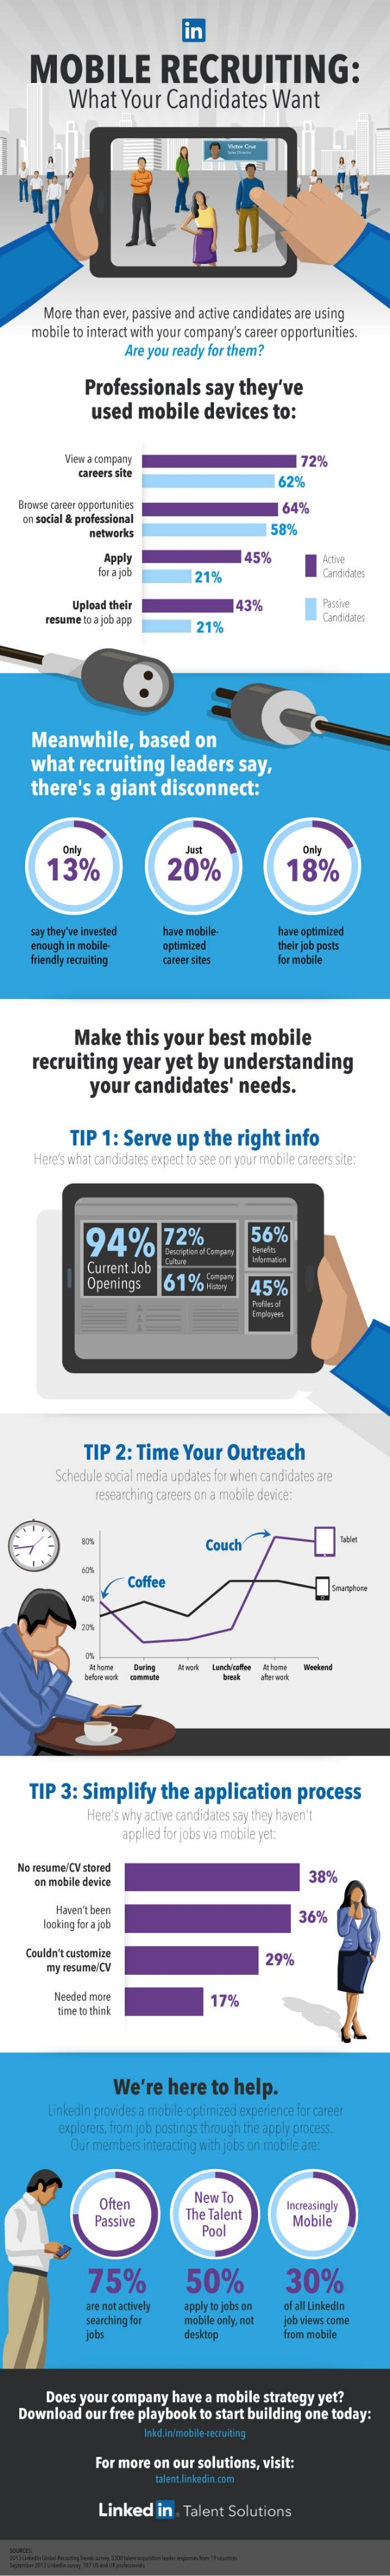 Mobile Recruiting Statistics That Will Give You Pause | INFOGRAPHIC